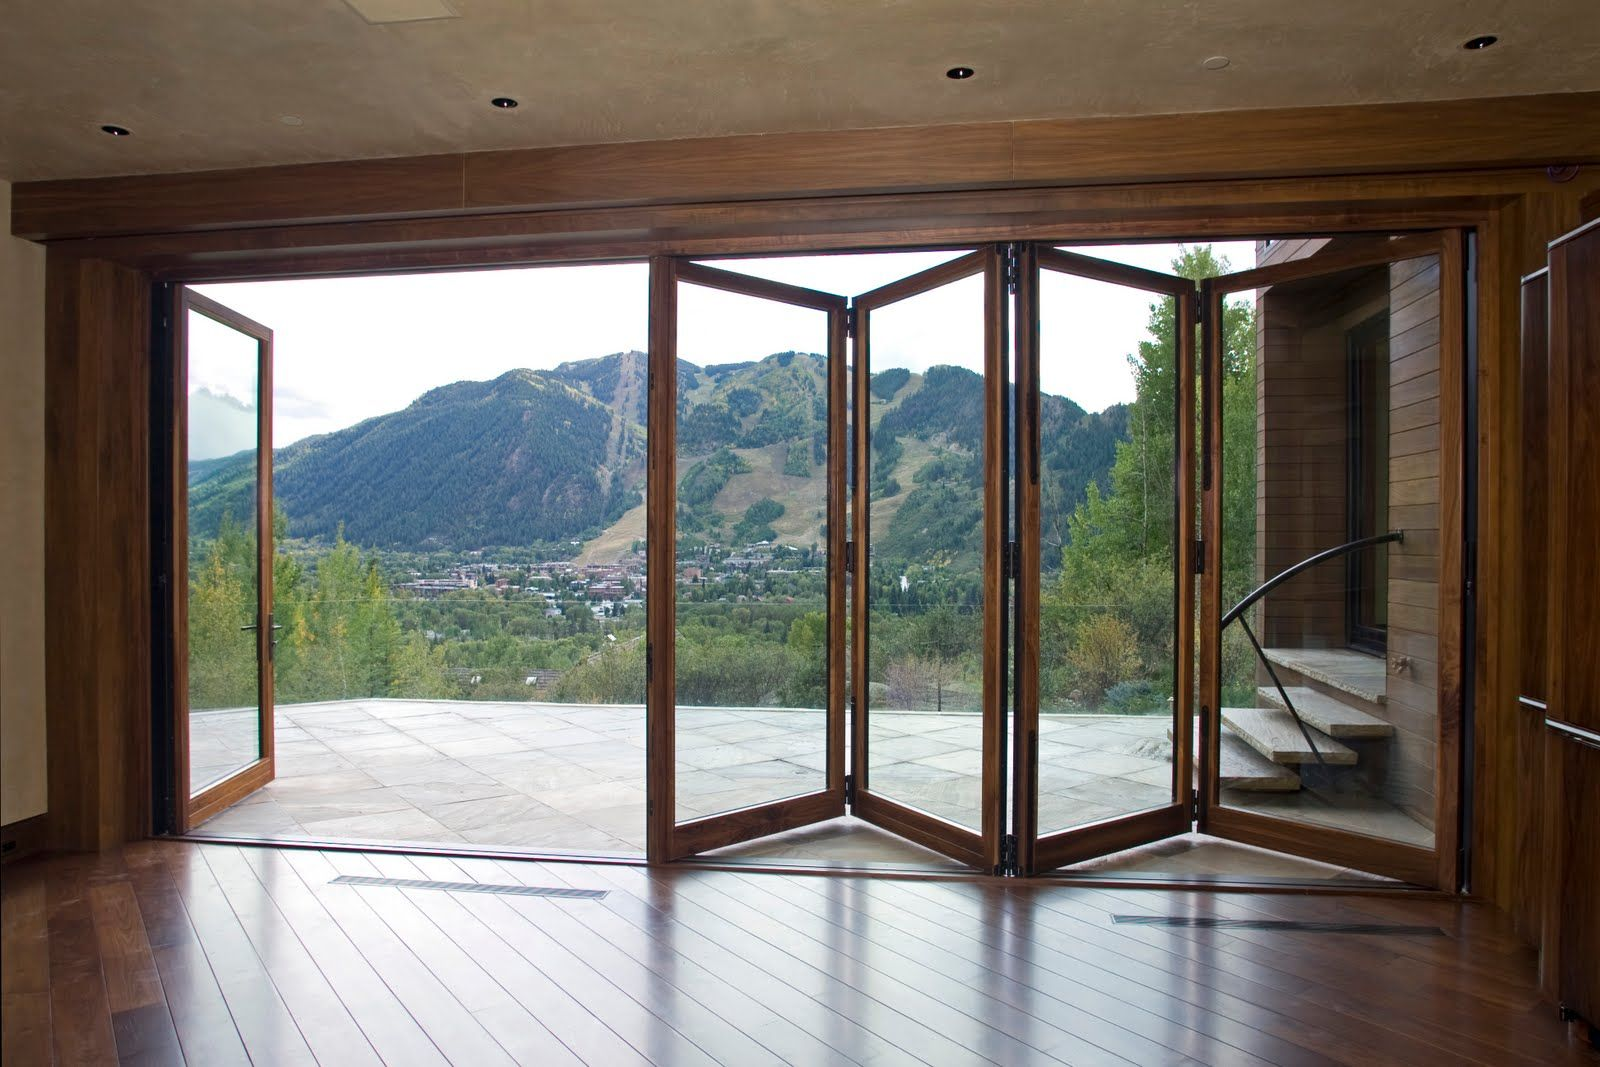 Amazing View Photos Accordion Glass Doors On The Page Posted A